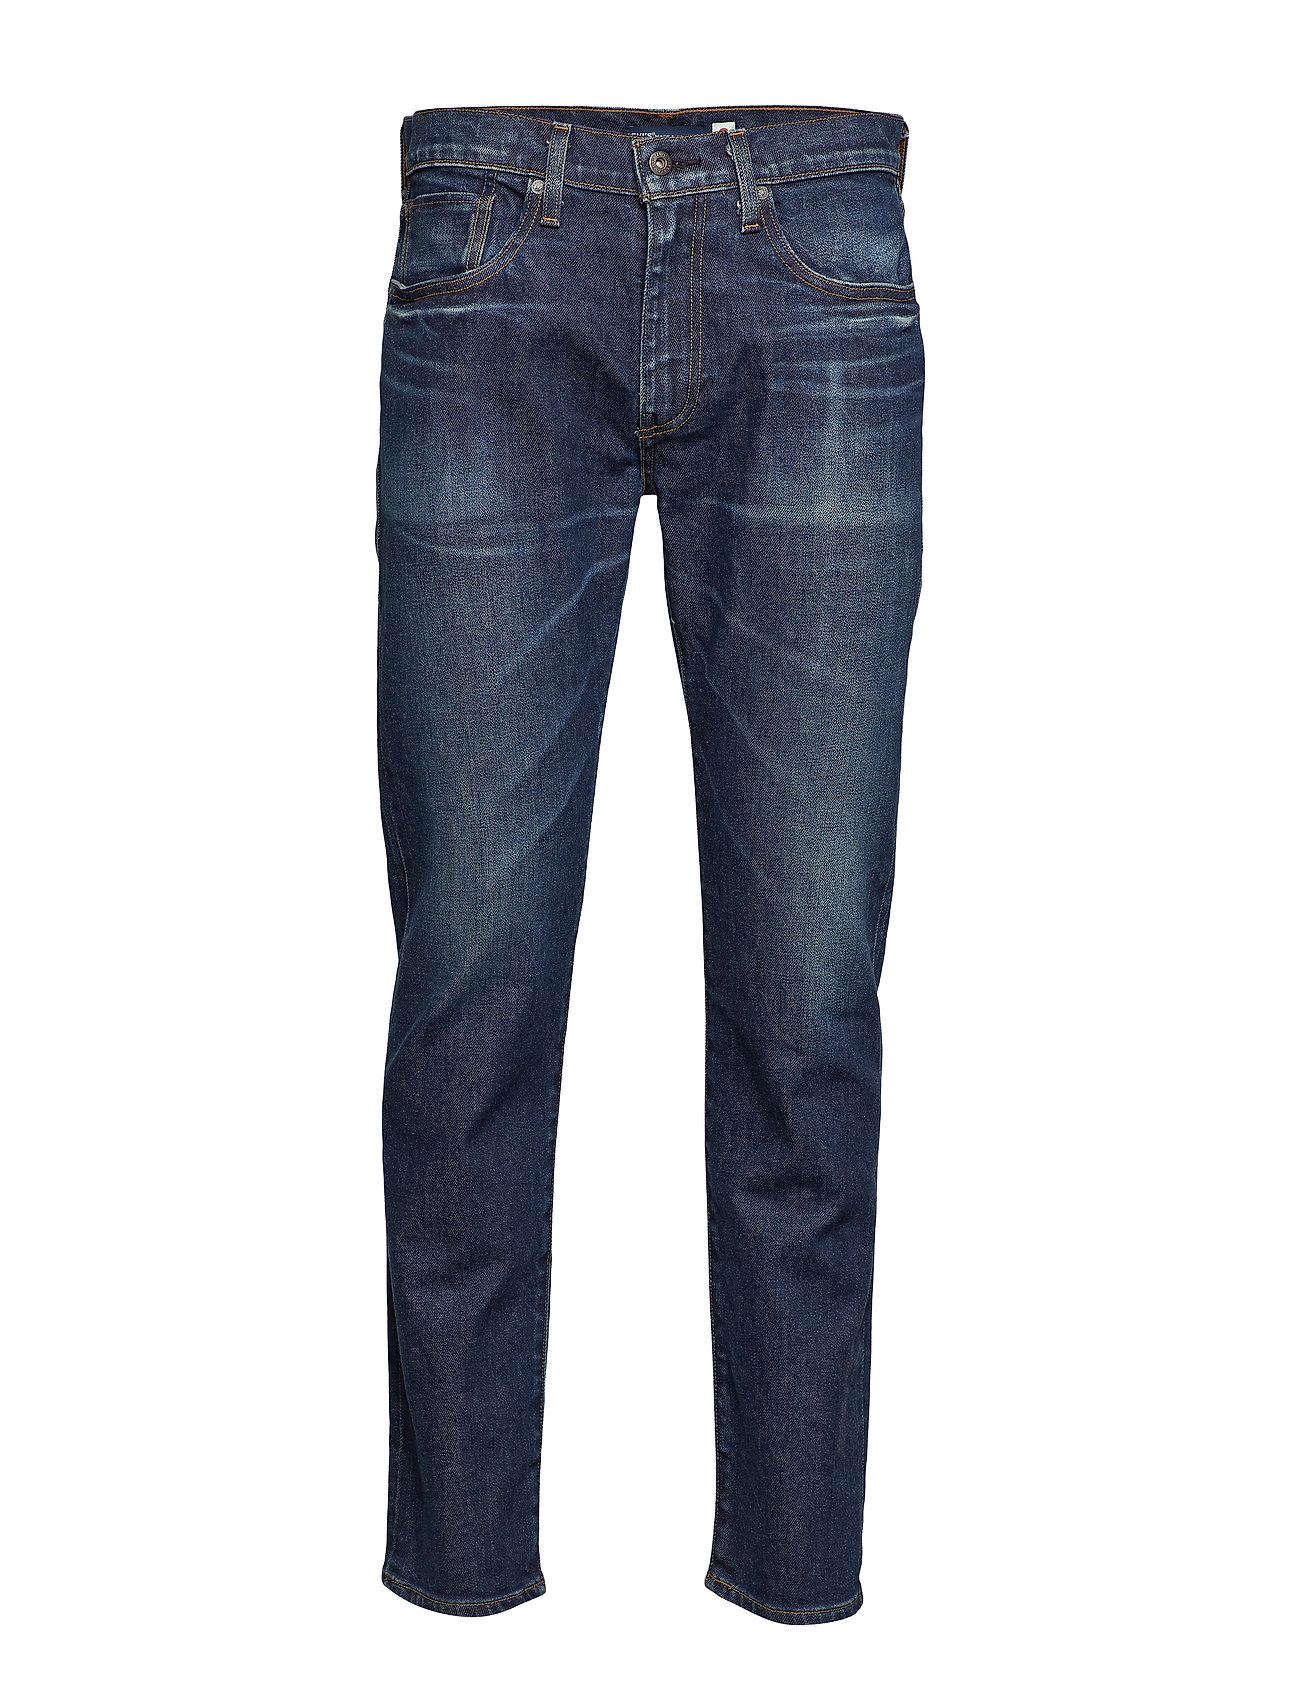 Levi's Made & Crafted LMC 502 LMC MATSU CLEAN MIJ - MED INDIGO - WORN IN